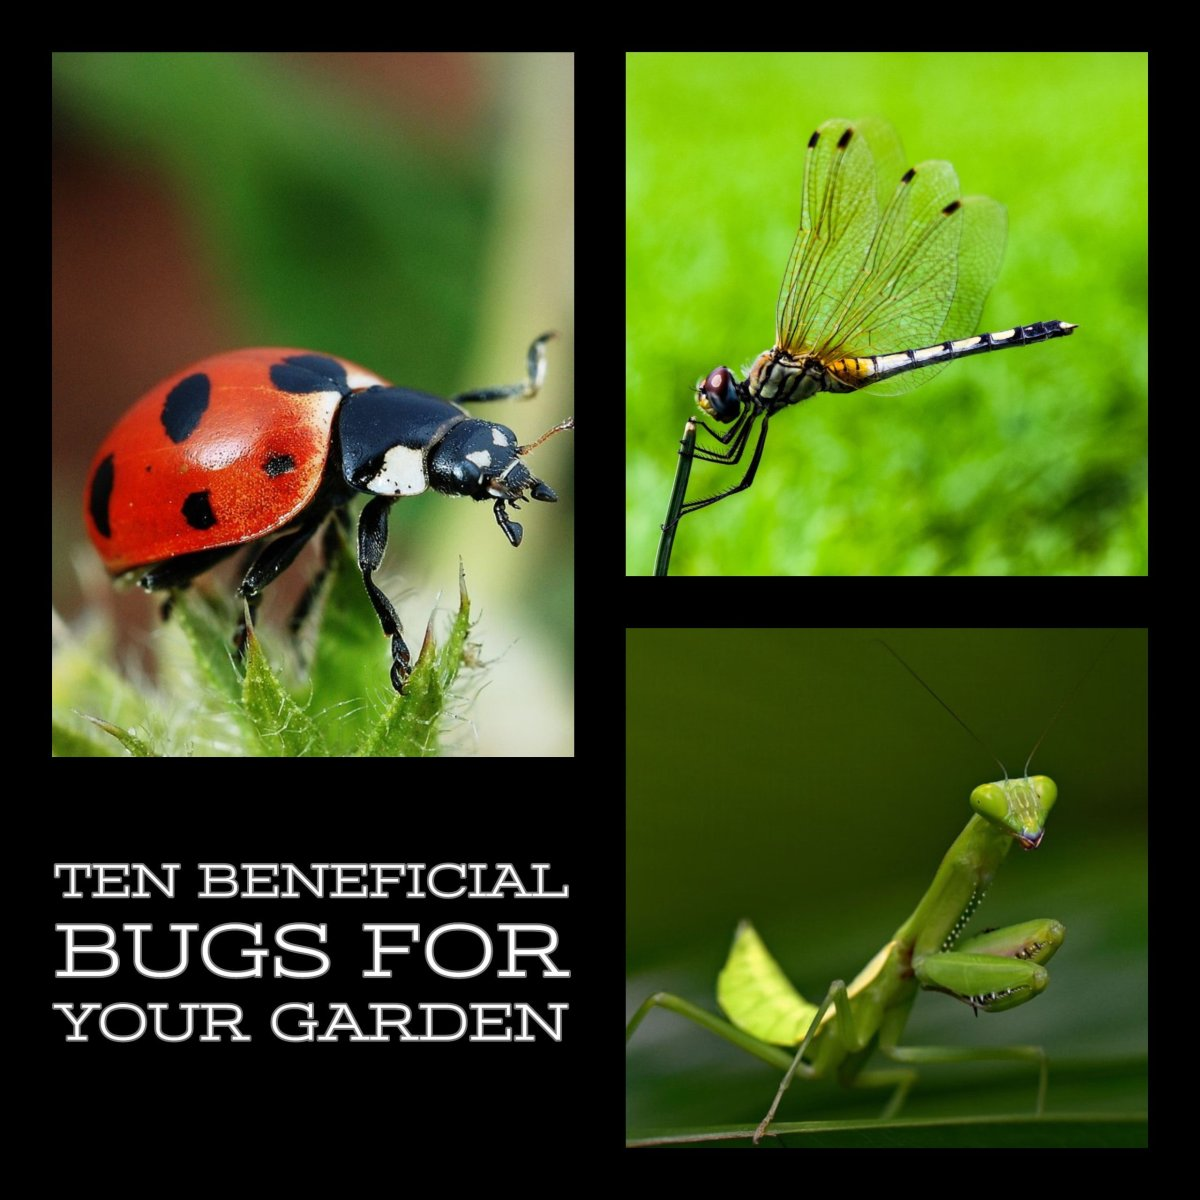 The 10 Best Bugs for Your Garden